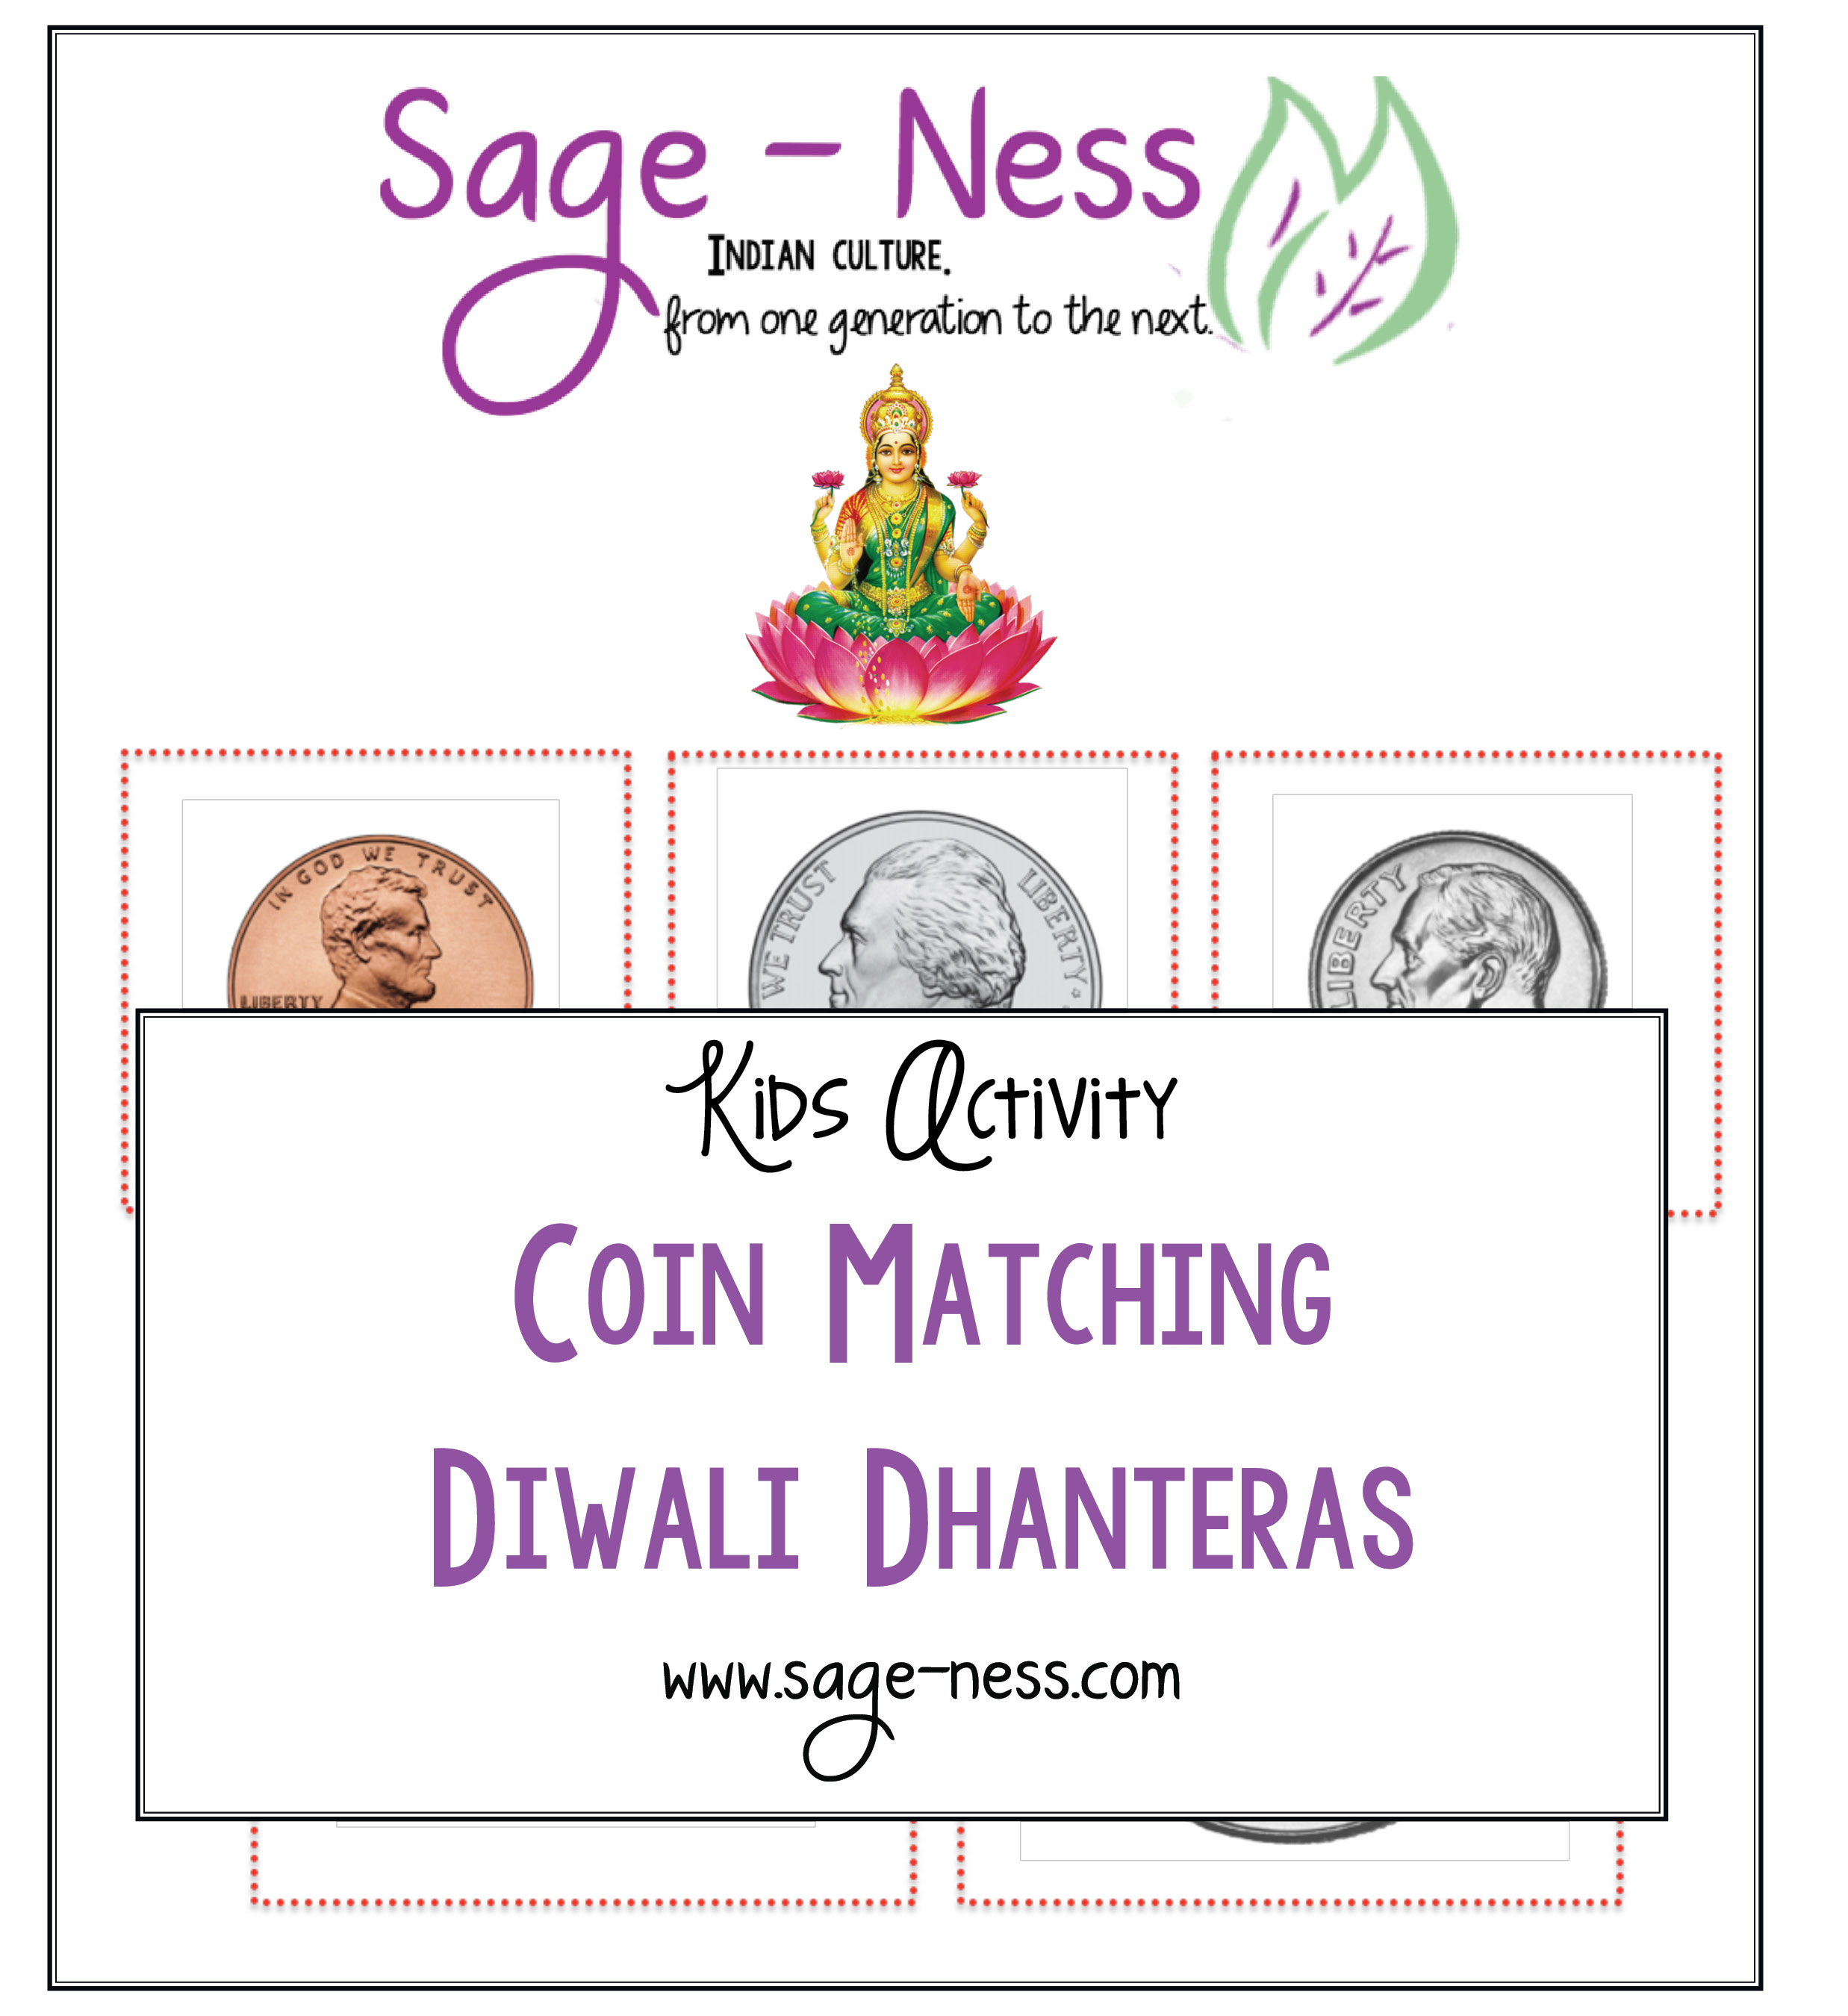 Diwali-Kids-Activity-Dhanteras-Coin-Matching